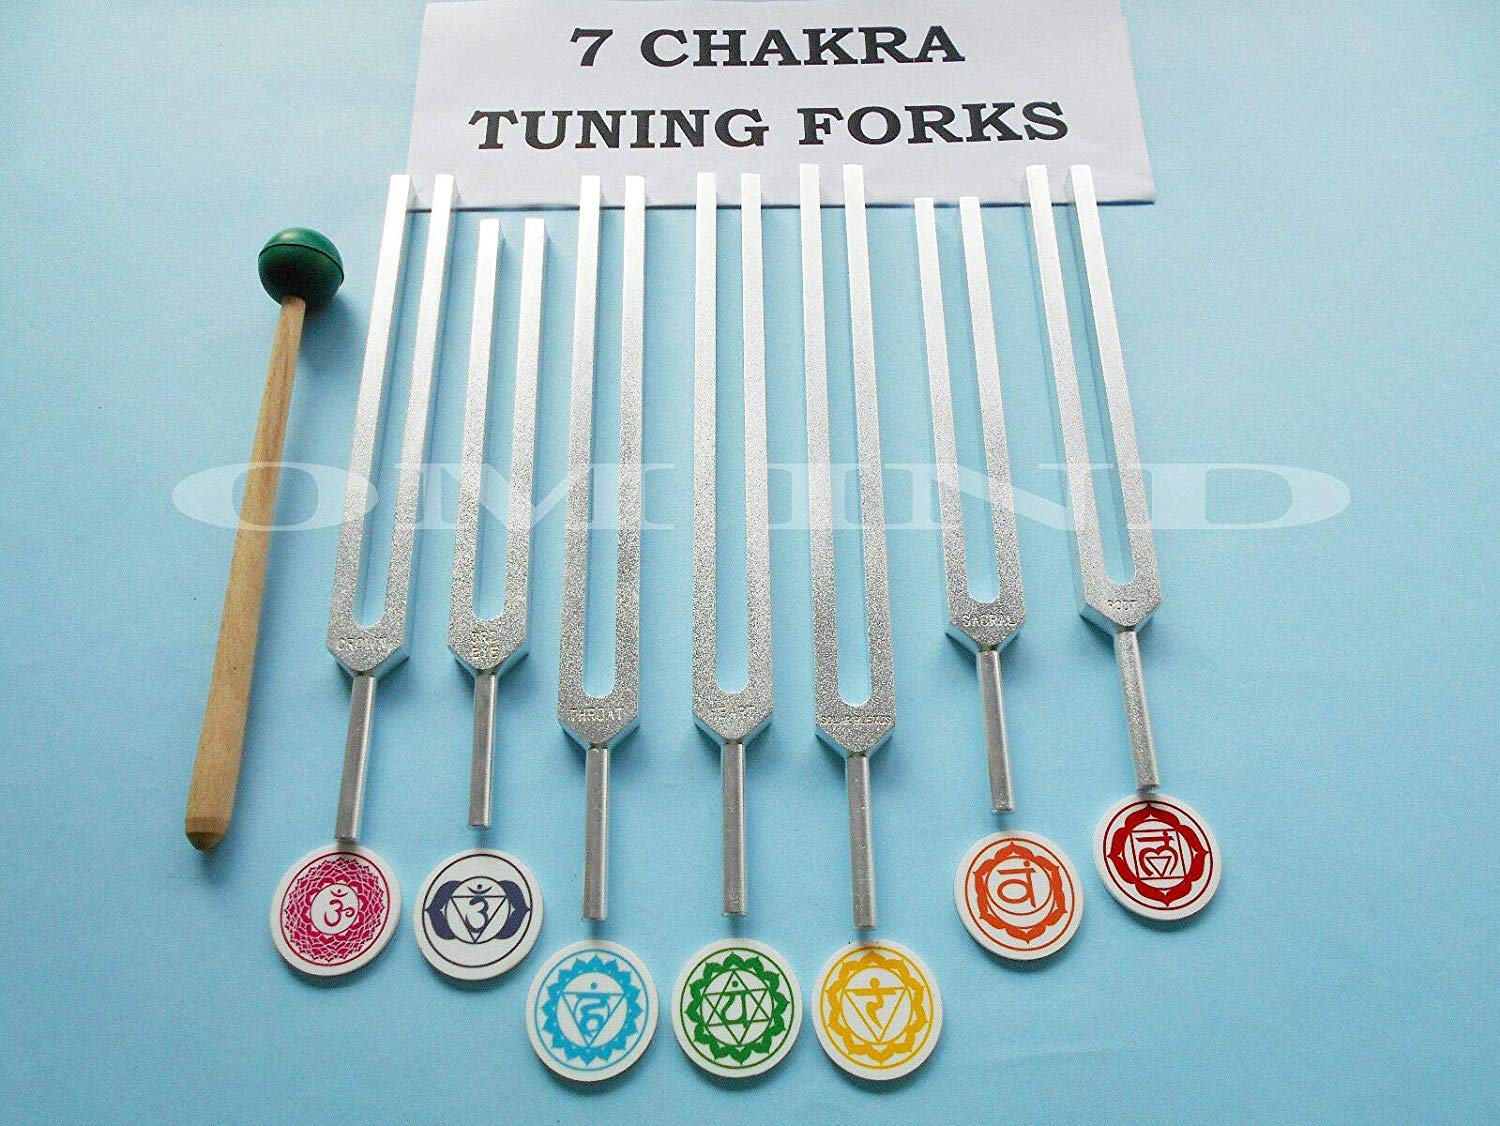 Om Industries 7 Chakra Tuning Fork With Sign